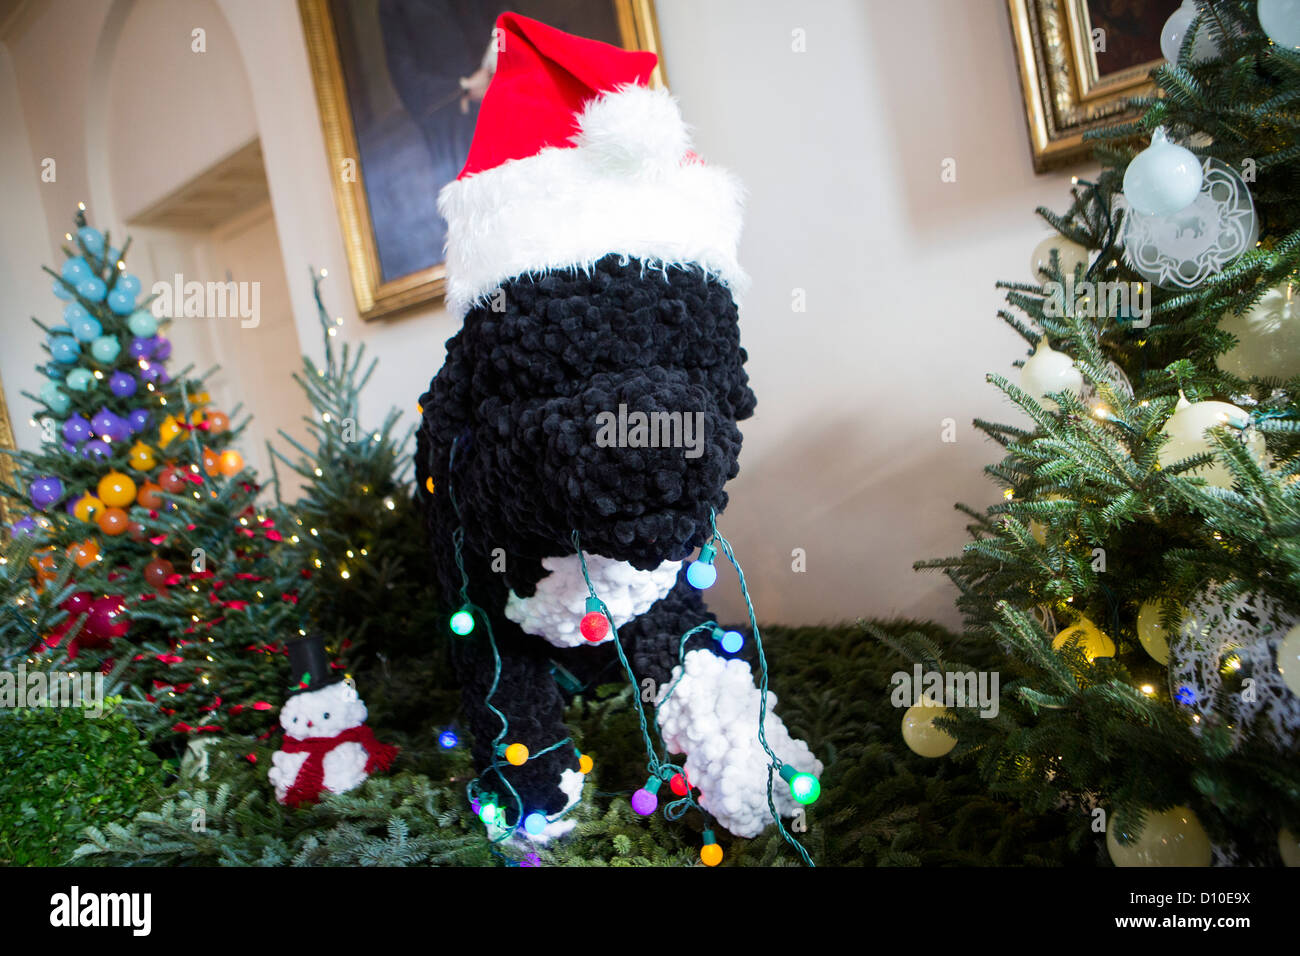 The 2012 White House Christmas decorations. A model of Bo. - Stock Image